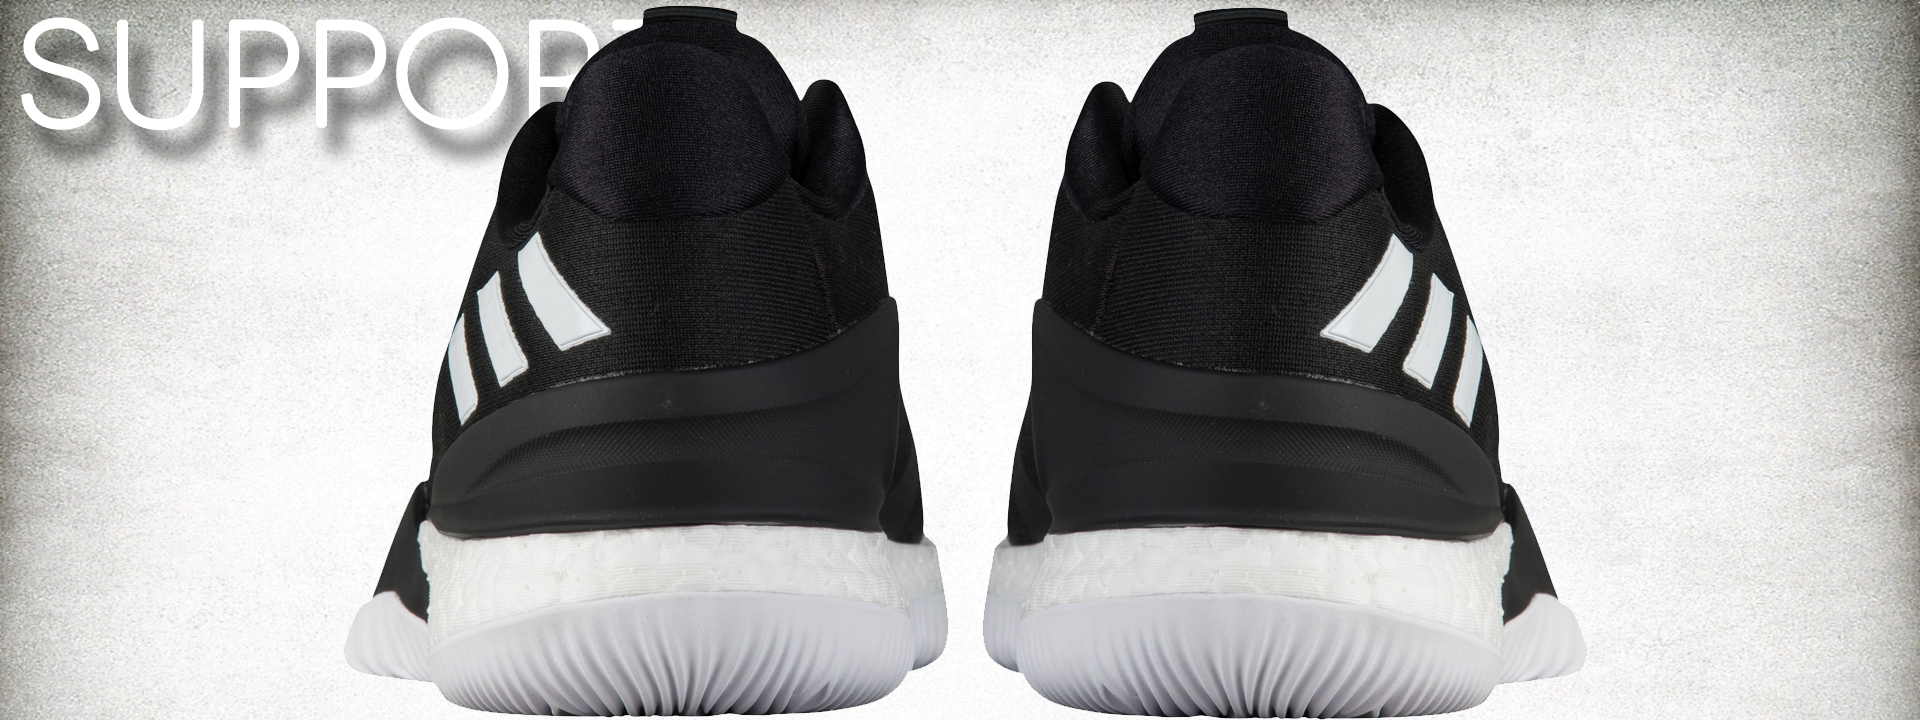 adidas Crazylight Boost 2018 Performance Review Duke4005 support